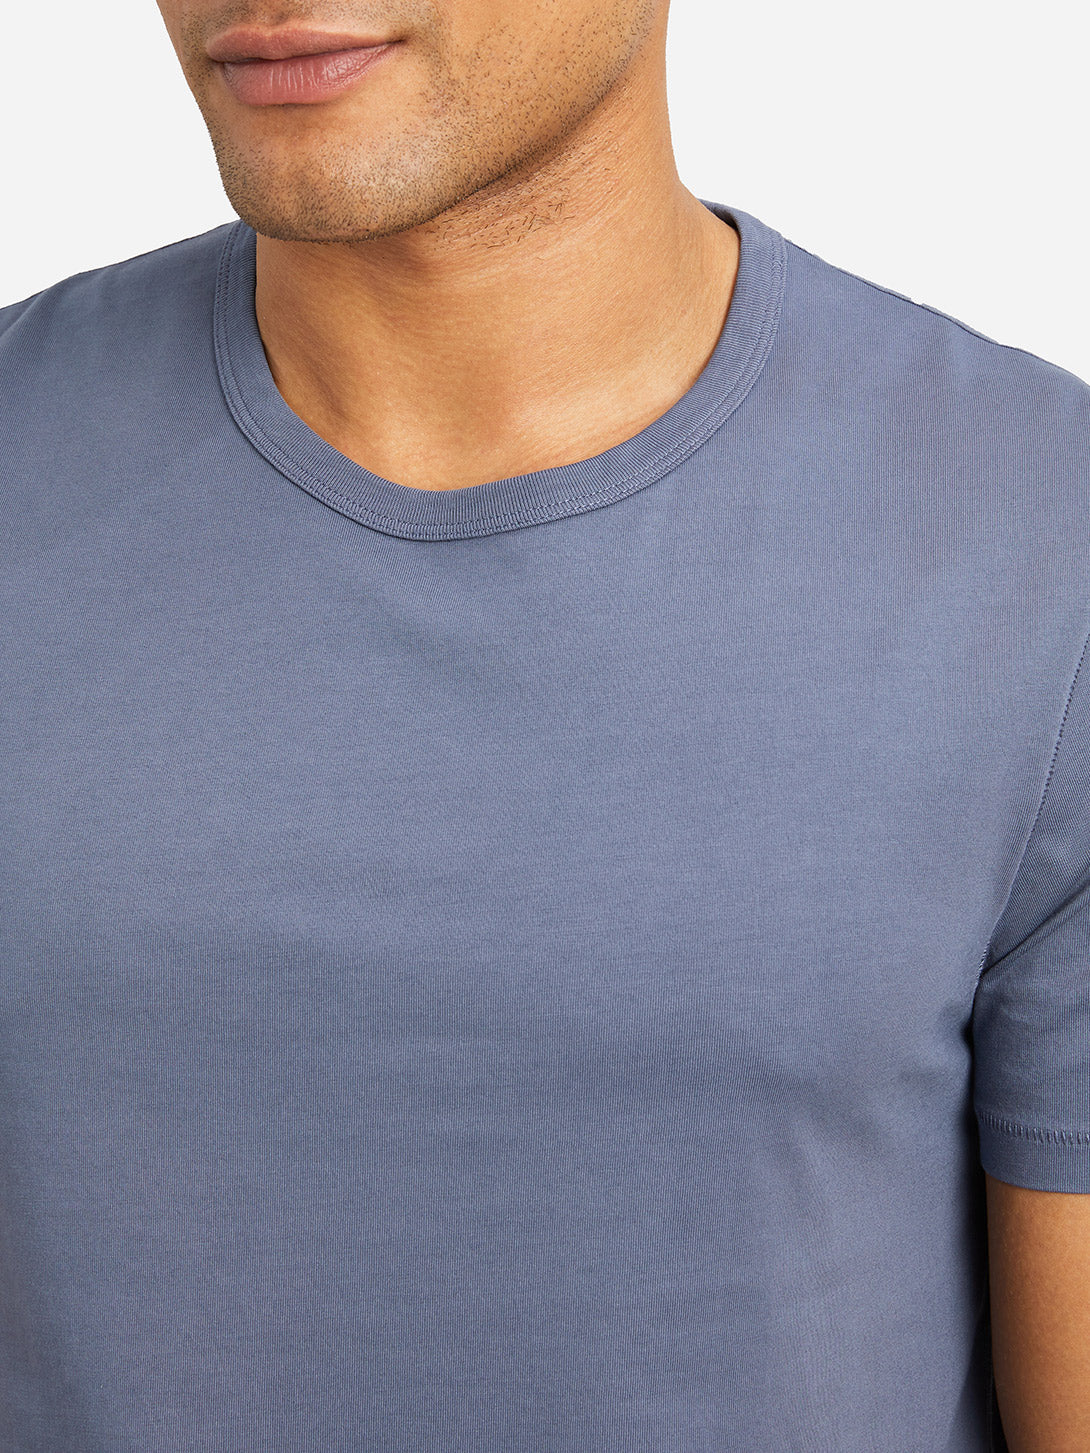 INDIGO BLUE short sleeve crew neck t shirt village crew neck t shirt indigo blue